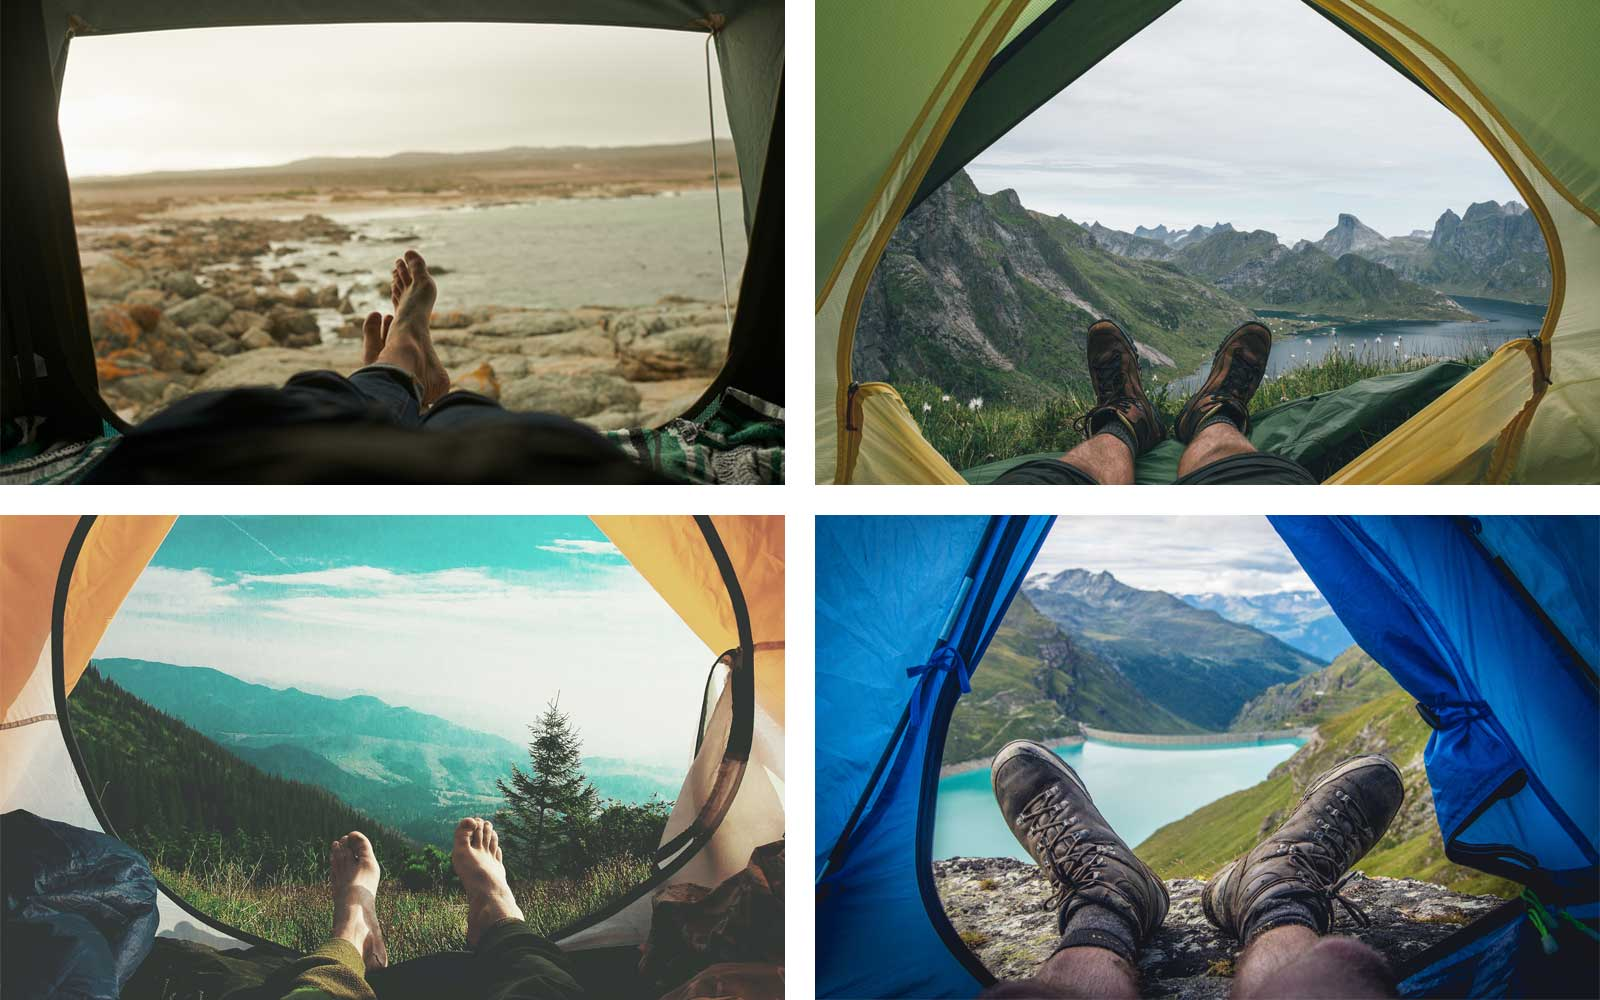 This Instagram Account Shows How So Many Travel Photos Are Almost Exactly the Same